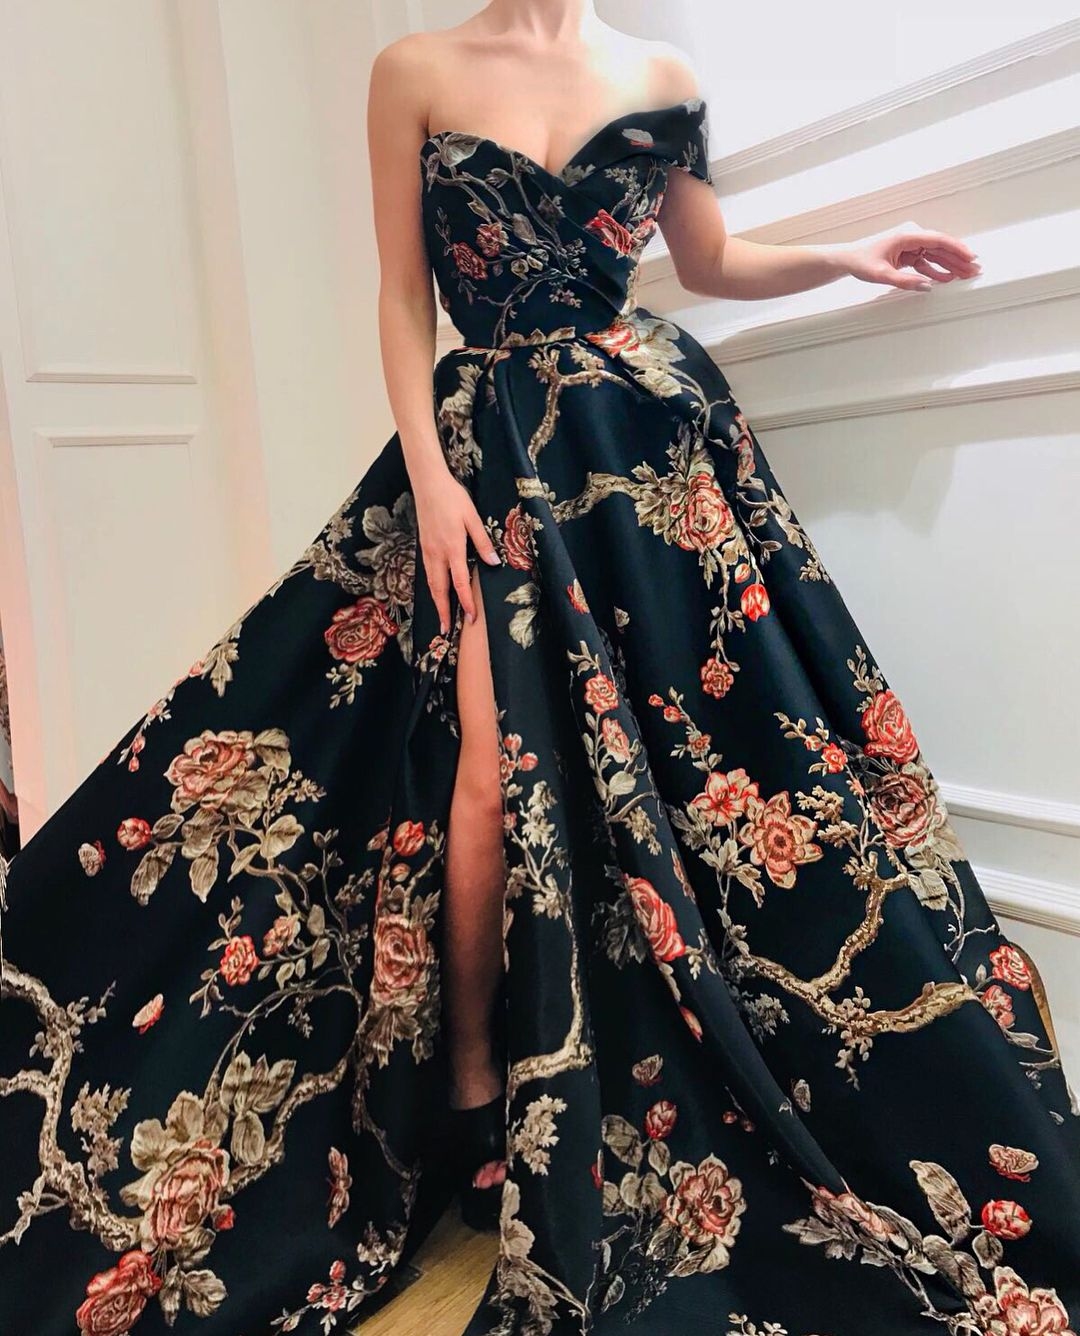 Pin by İrem bahar koÇ on gown pinterest gowns prom and clothes